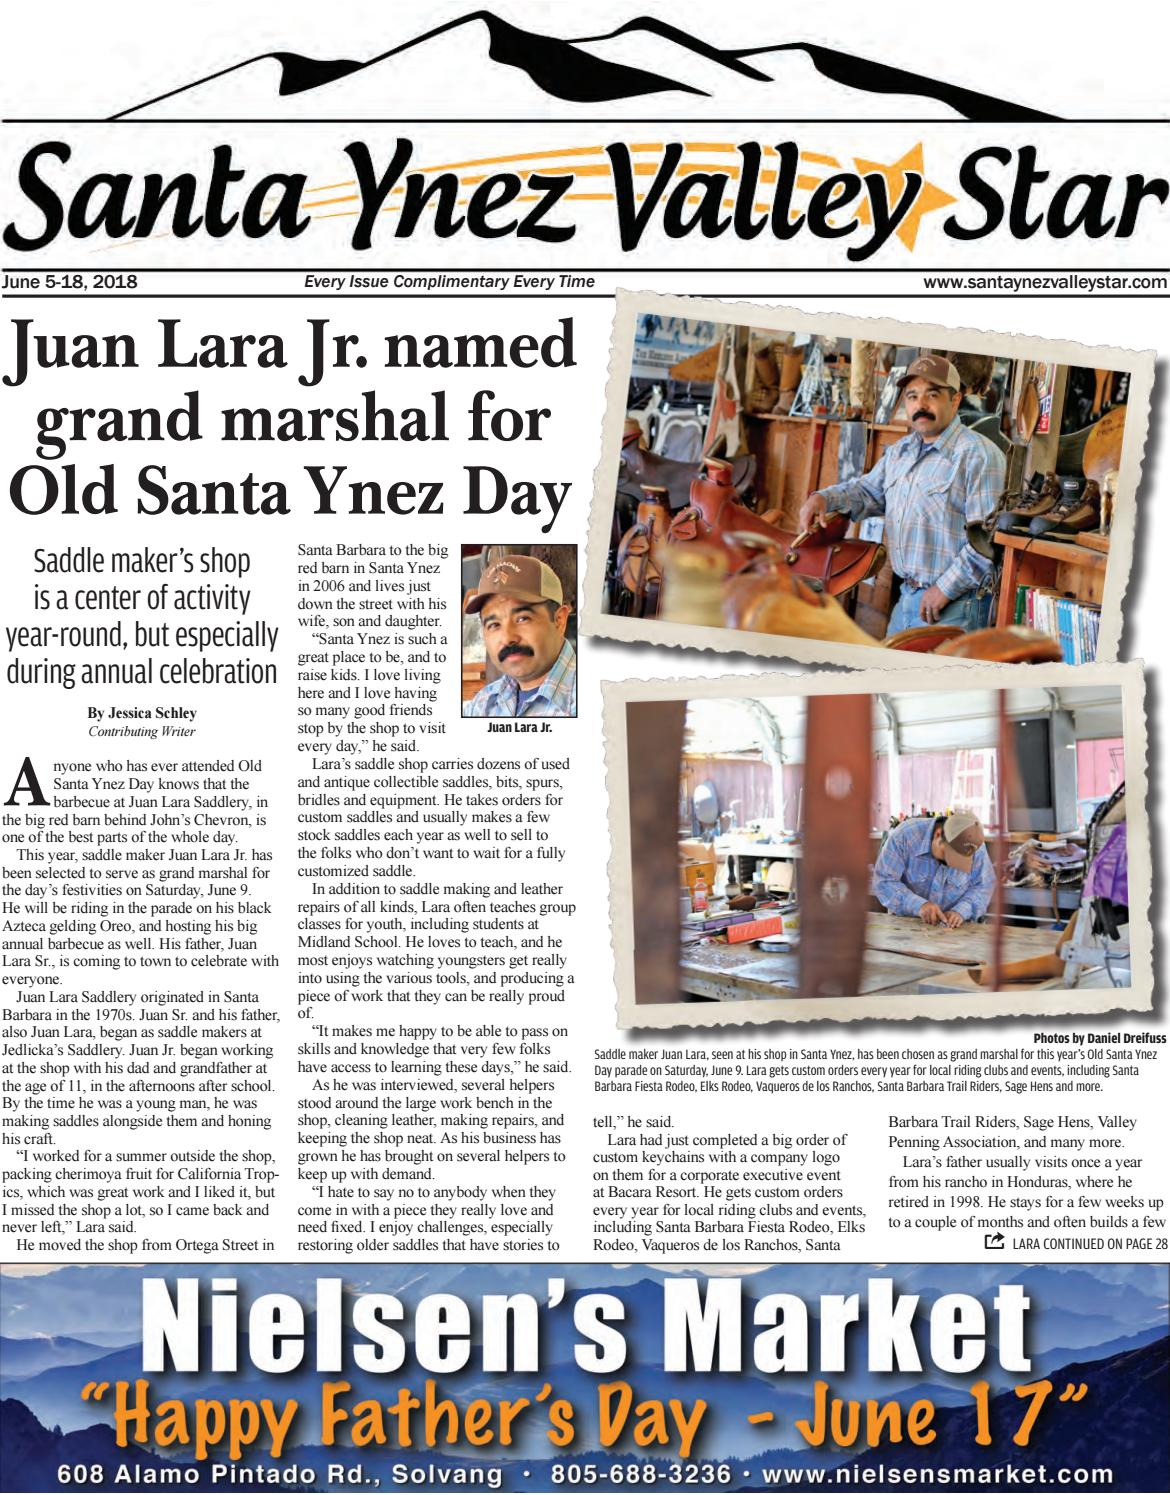 Santa Ynez Valley Star June A 2018 by Santa Ynez Valley Star